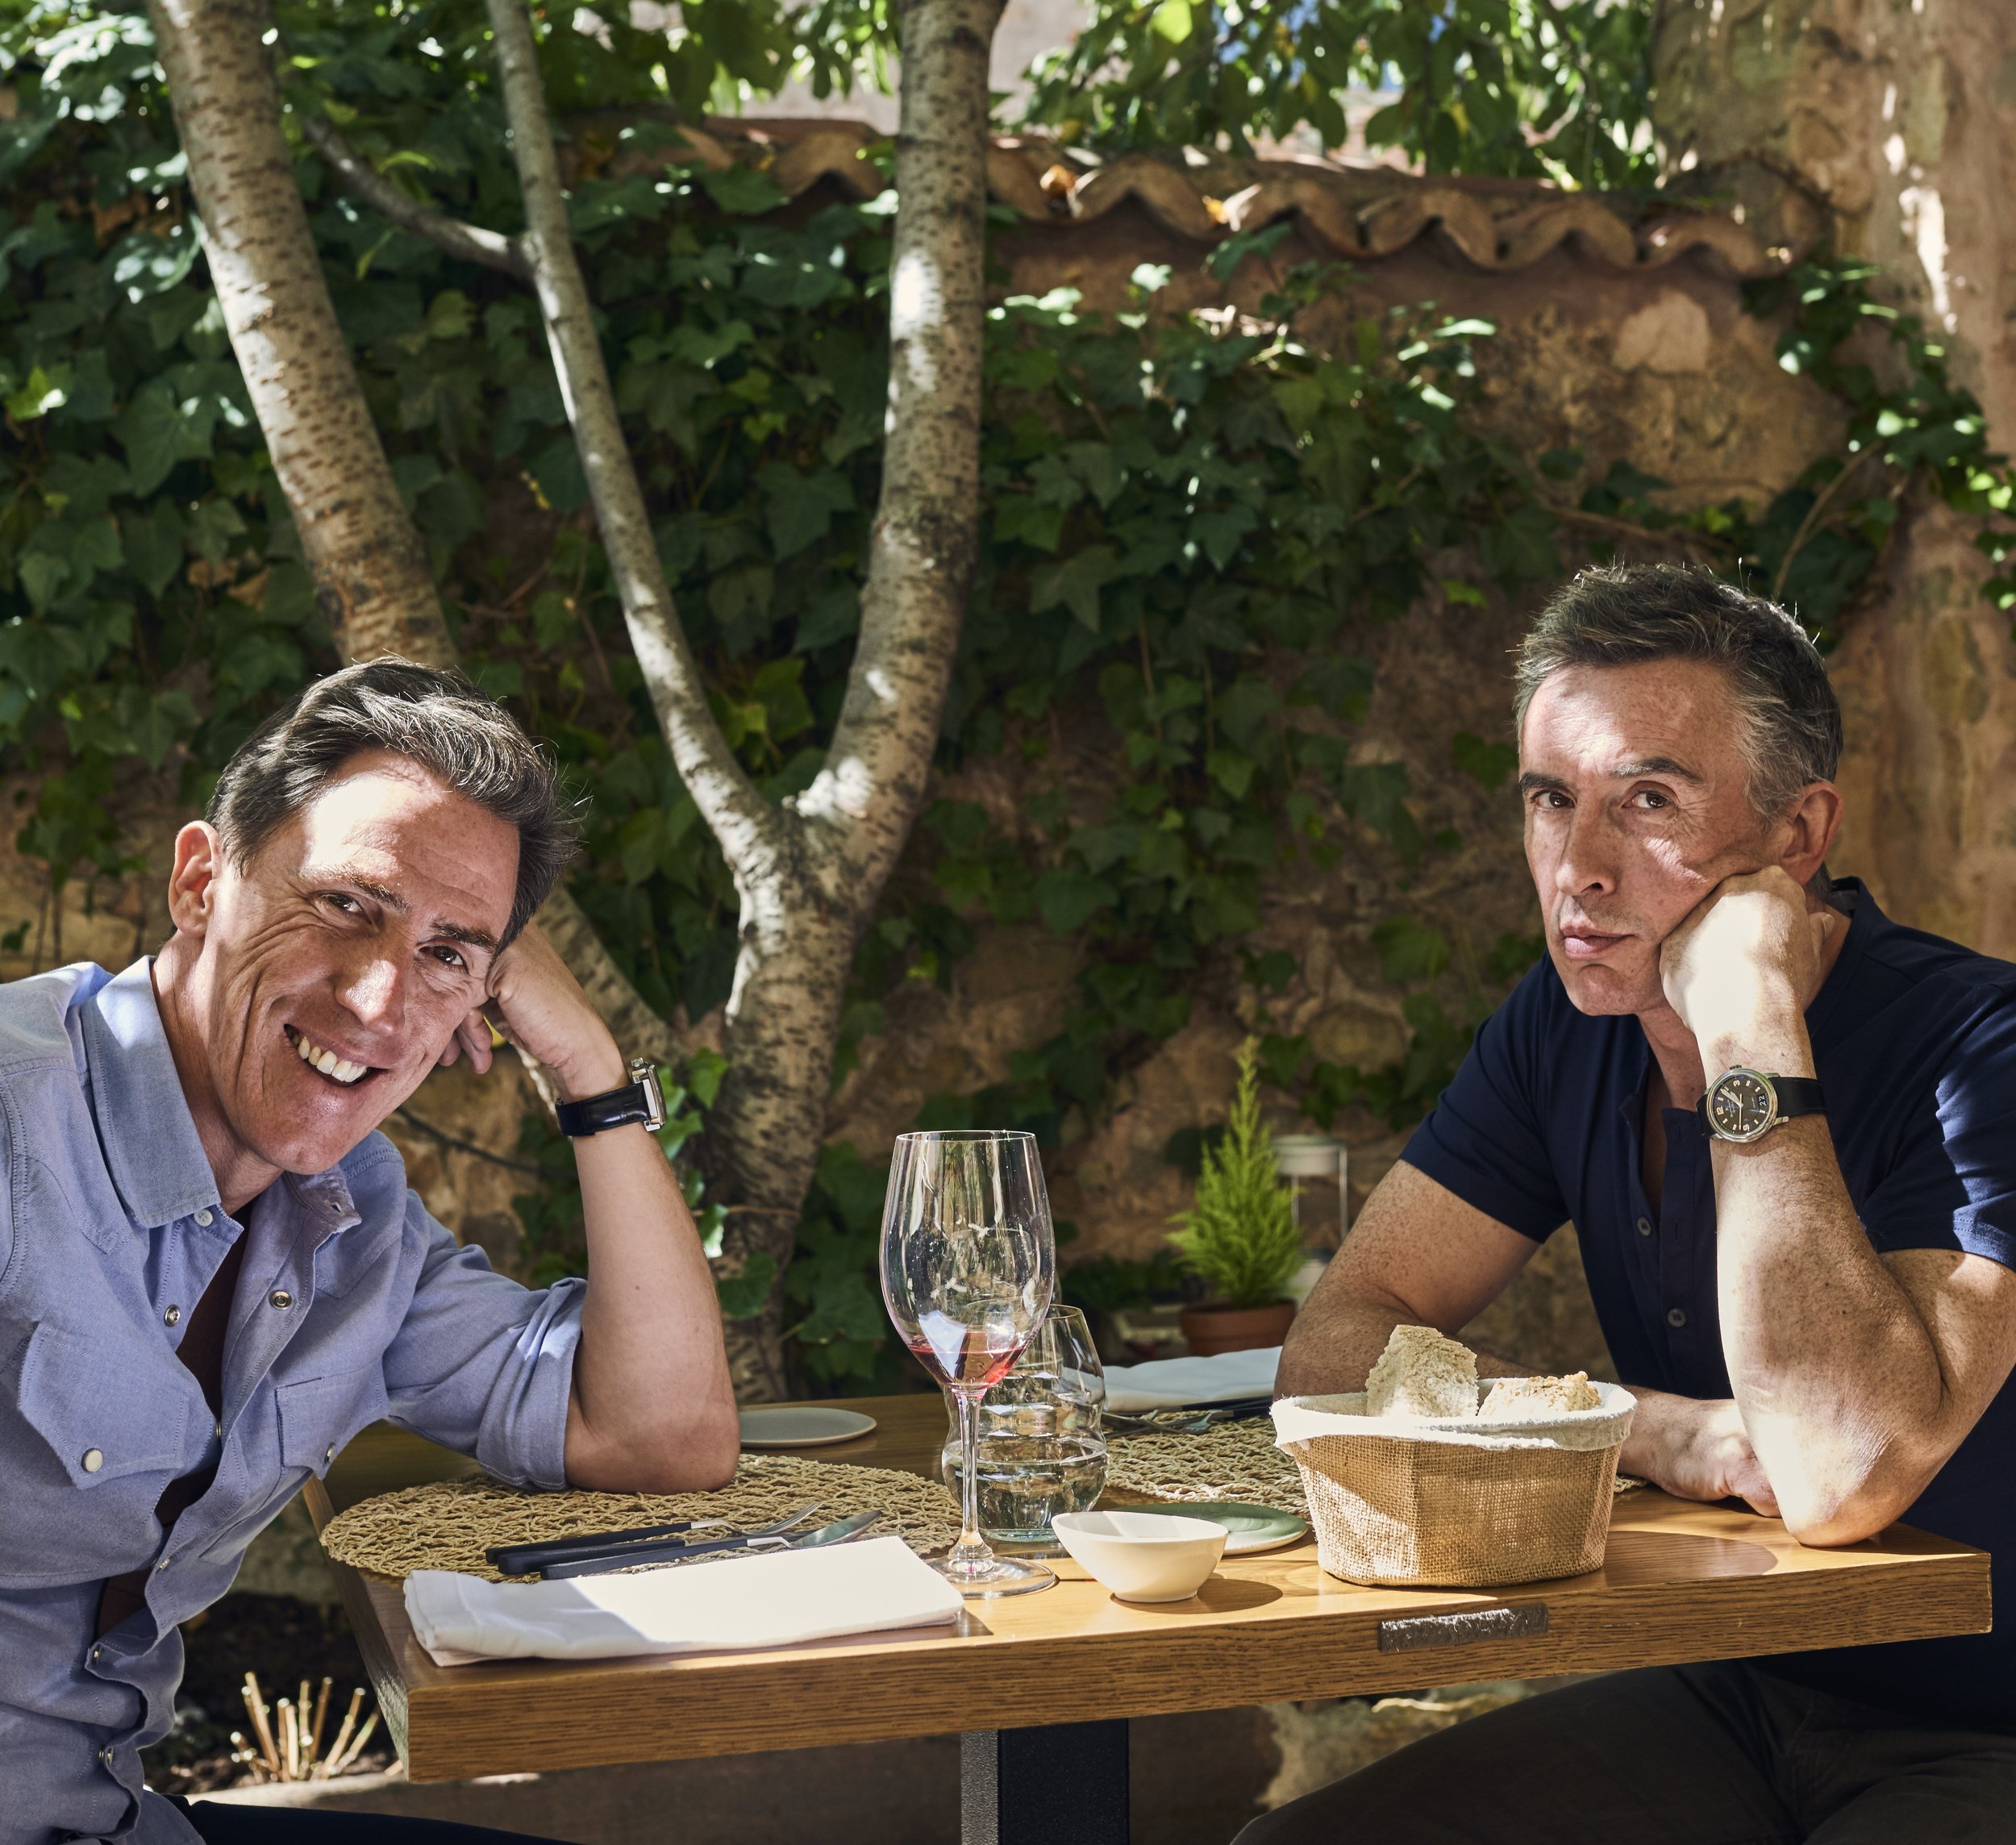 Brydon and Coogan: Fine dining, bickering and celebrity impression deathmatches, round 3